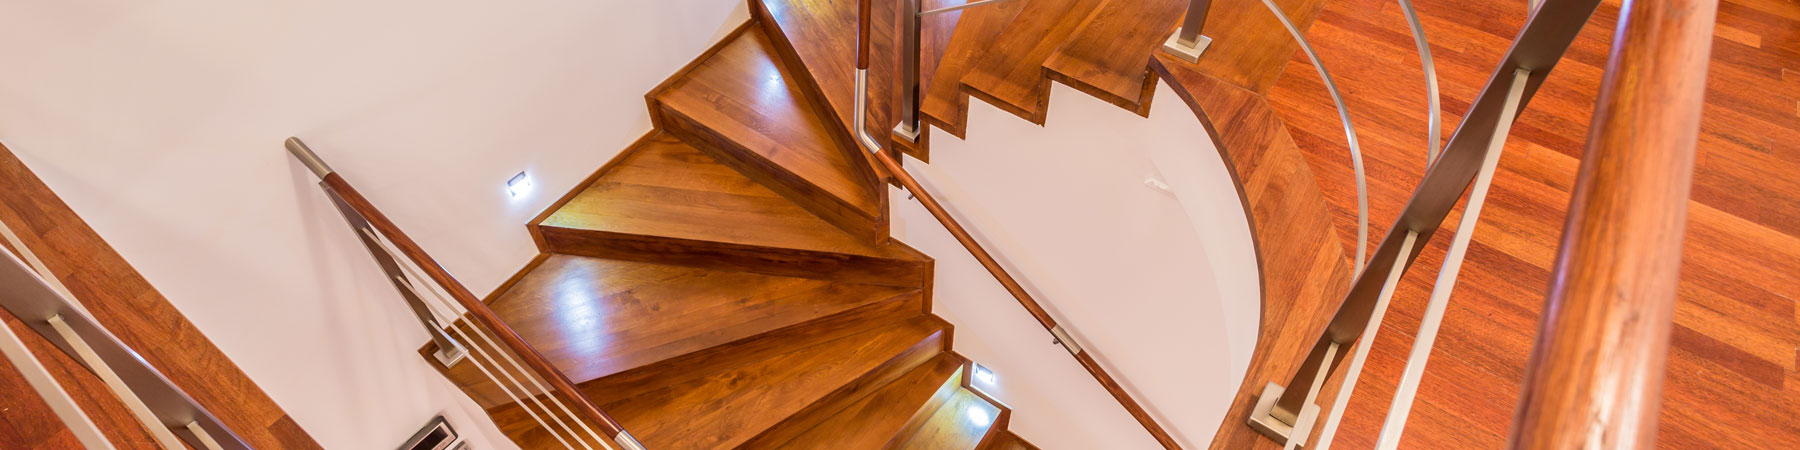 french polishing norwich stairs